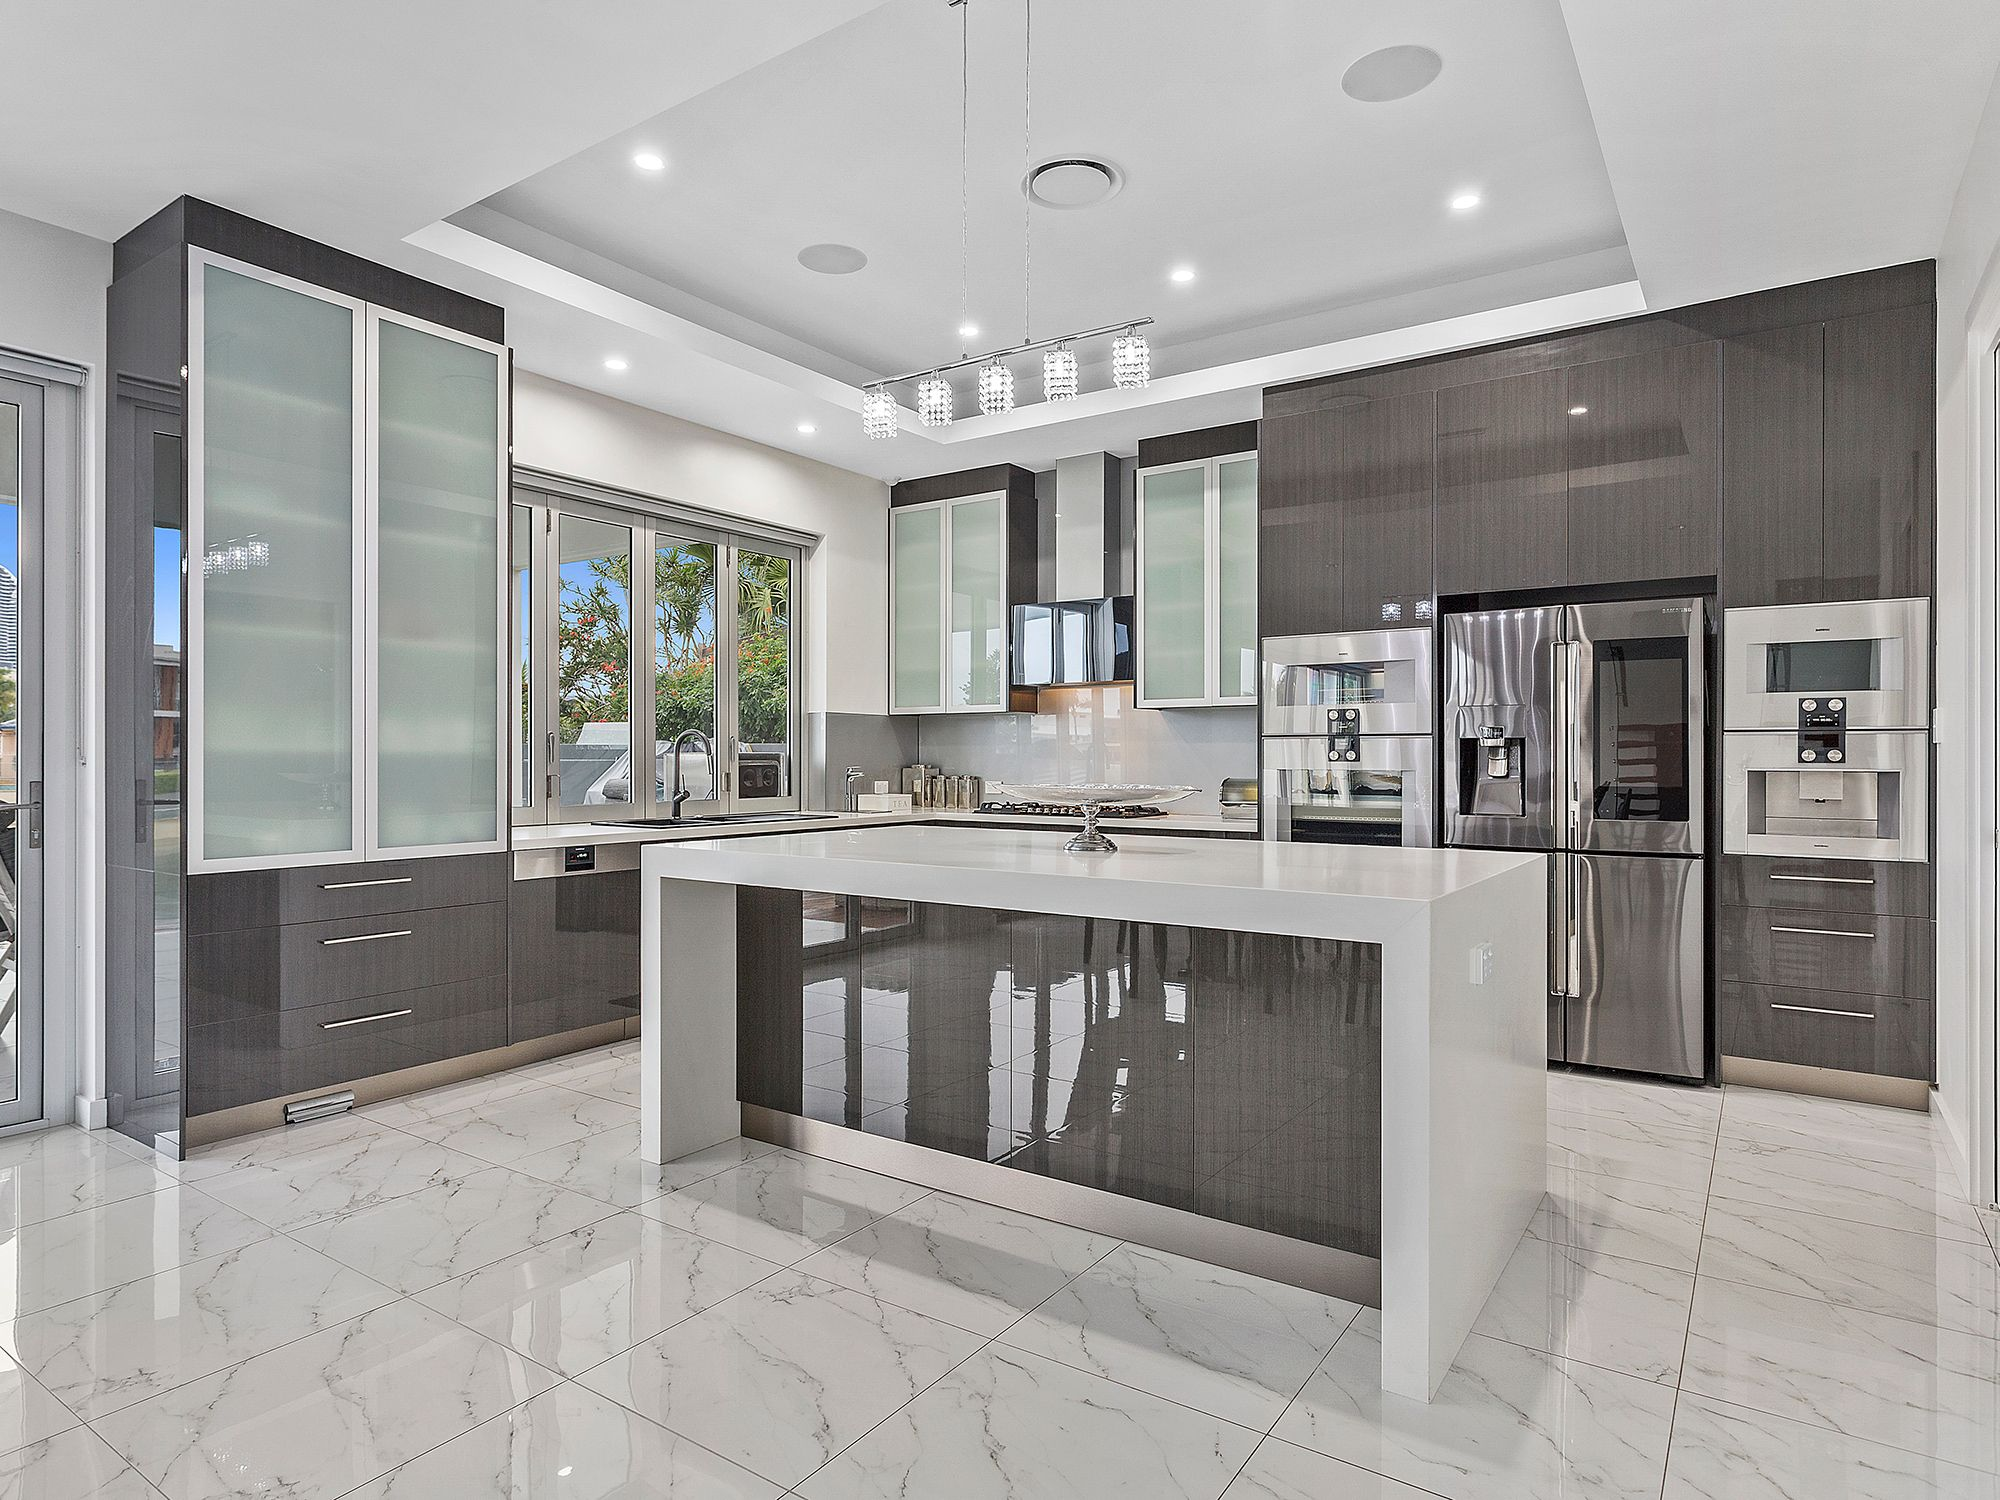 High Gloss Kitchen Creates A High End Look Island Bench Has Been Profiled To Look Thicker W Kitchen Design Modern Kitchen Design Open Plan Kitchen Living Room